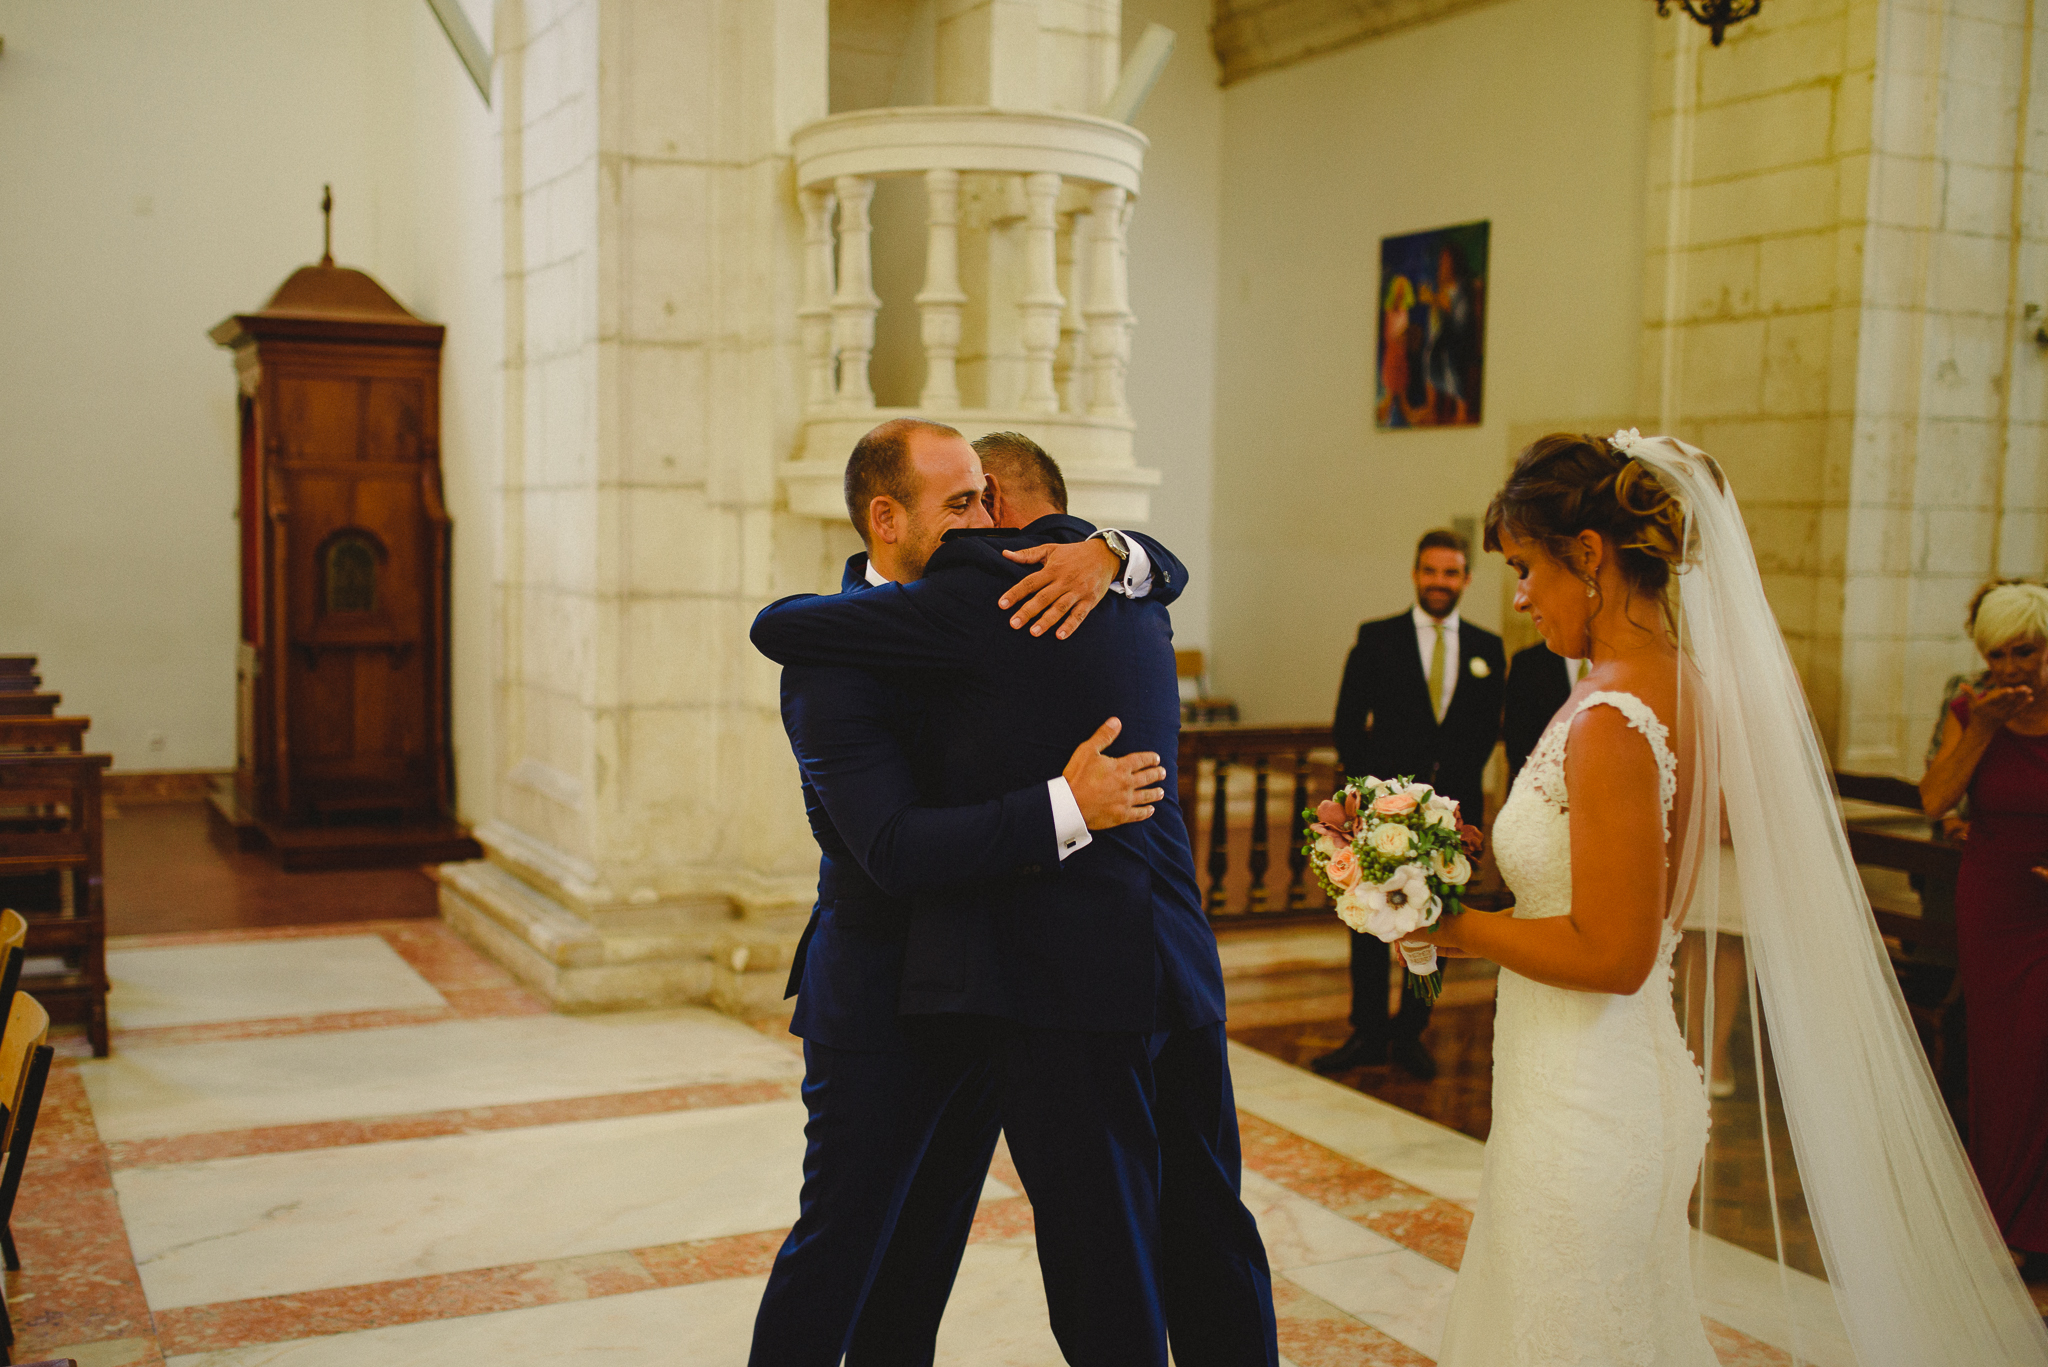 Father of the bride hugging groom after arriving with bride